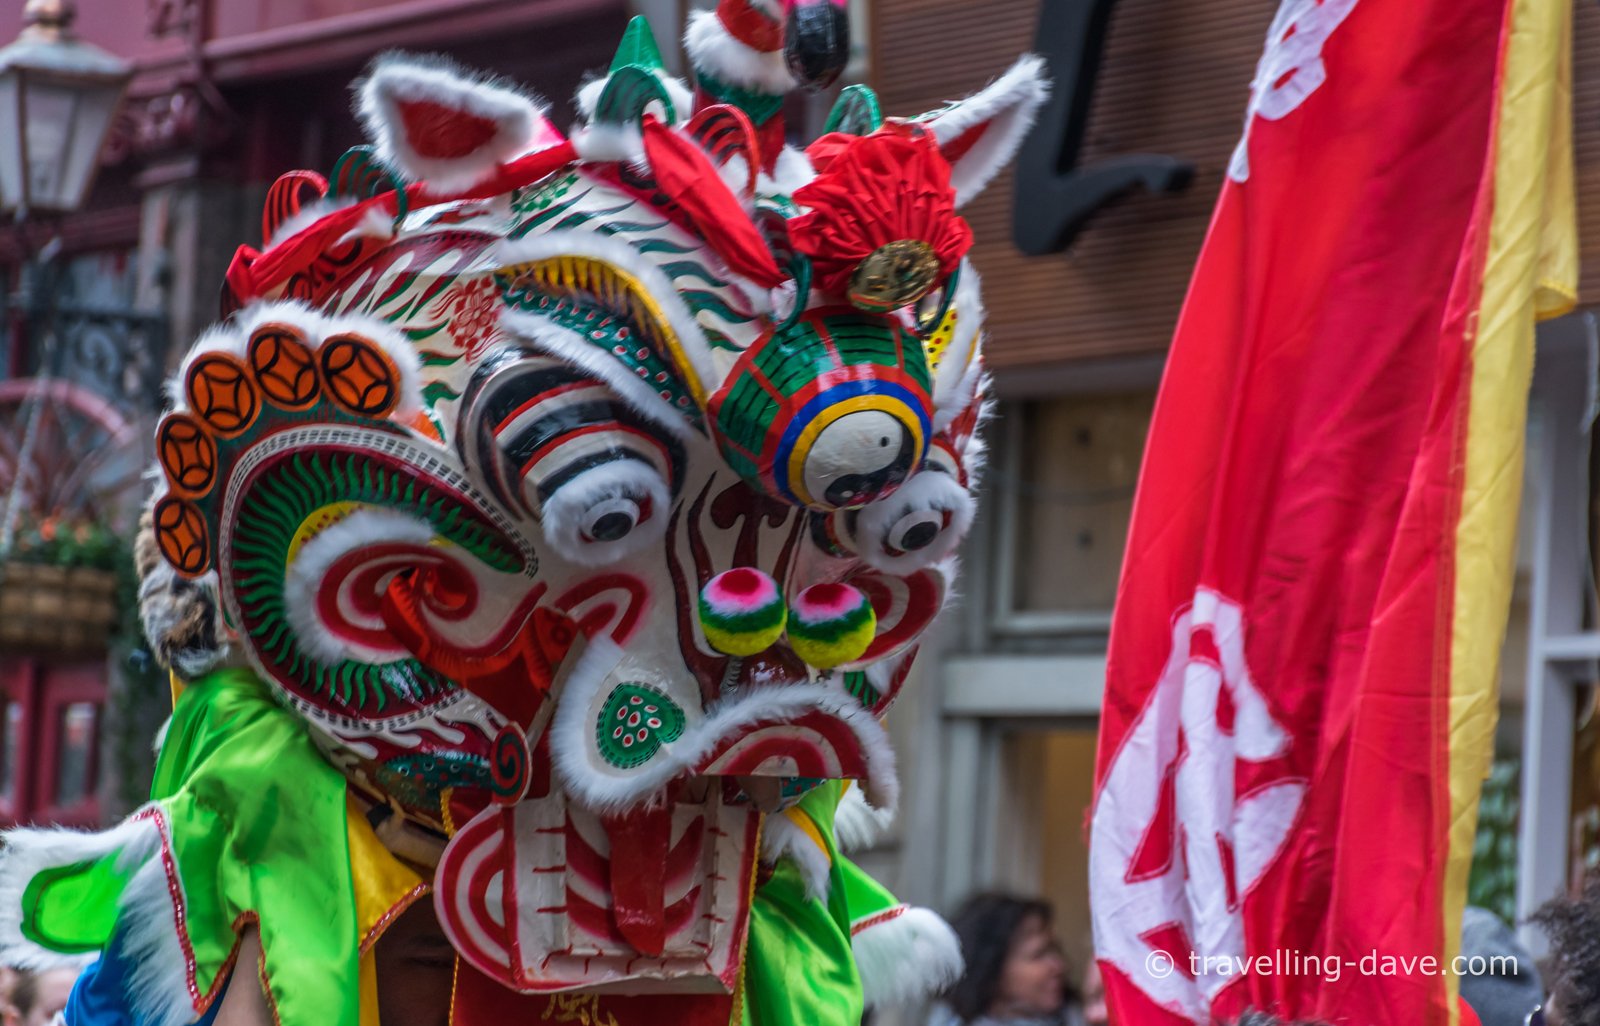 Chinese Dragon on parade in Chinatown, London